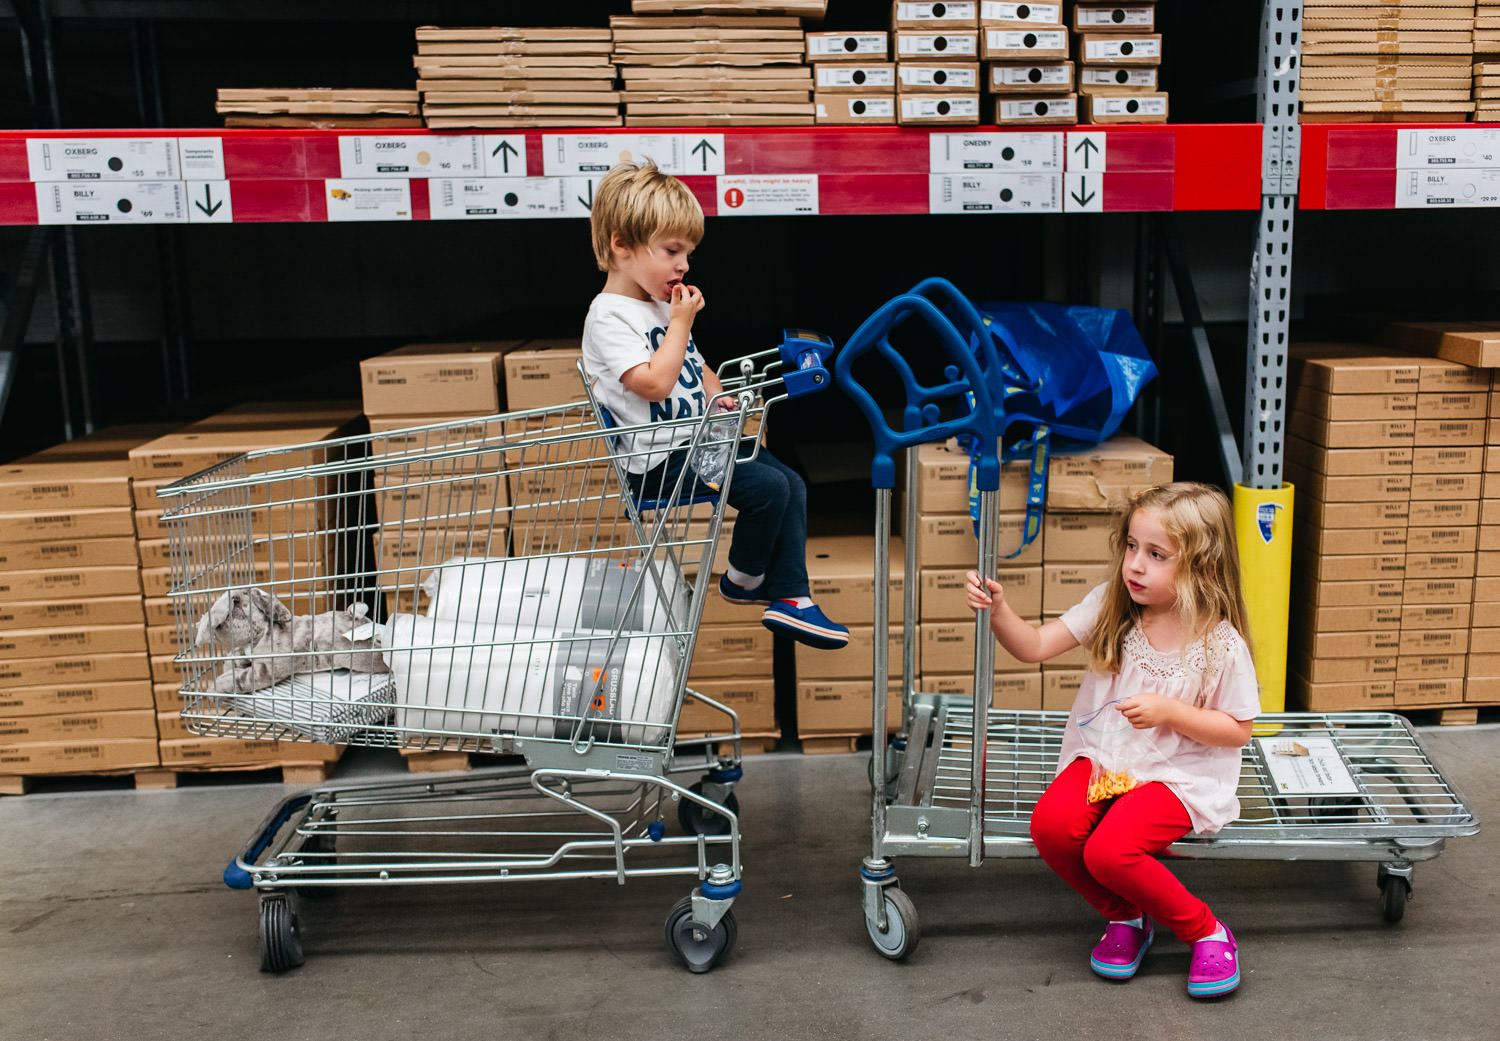 Two children take a break on a cart at IKEA.